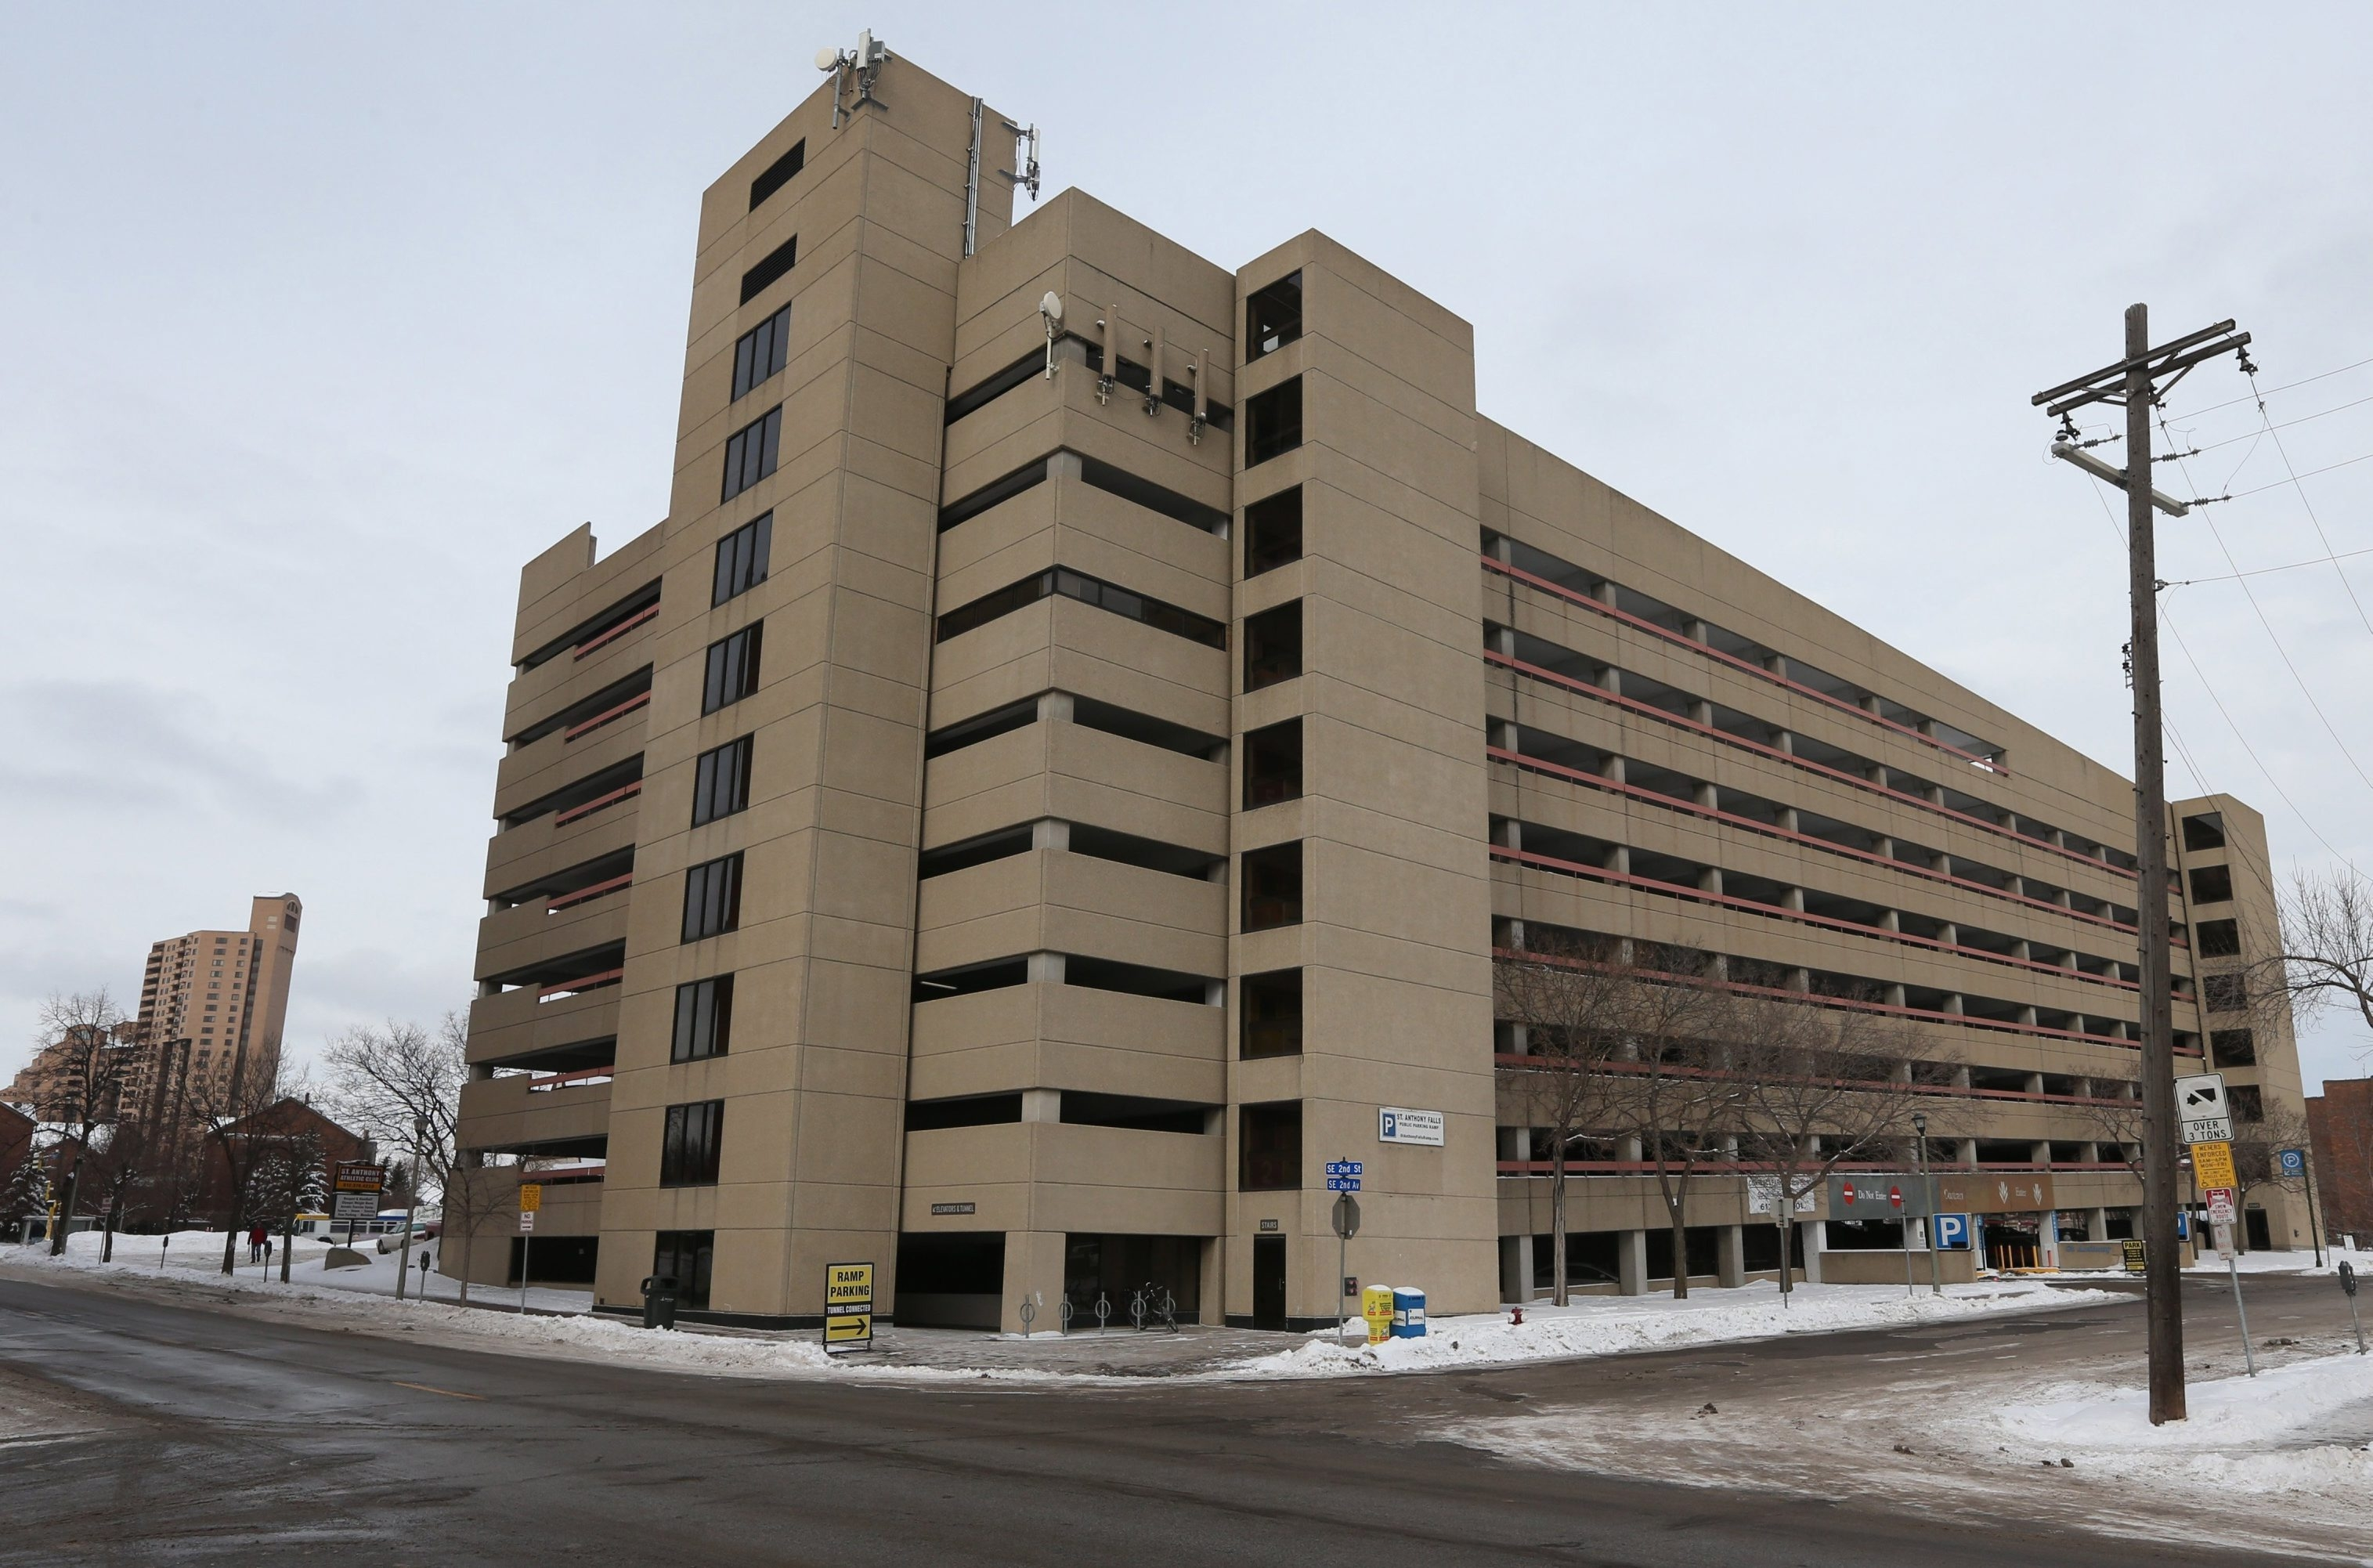 The Cuningham Group, a Minneapolis architectural firm, has proposed adding 70 to 75 affordable apartments on the periphery of a monolithic '80s-era parking ramp in the popular St. Anthony Main area of Minneapolis.